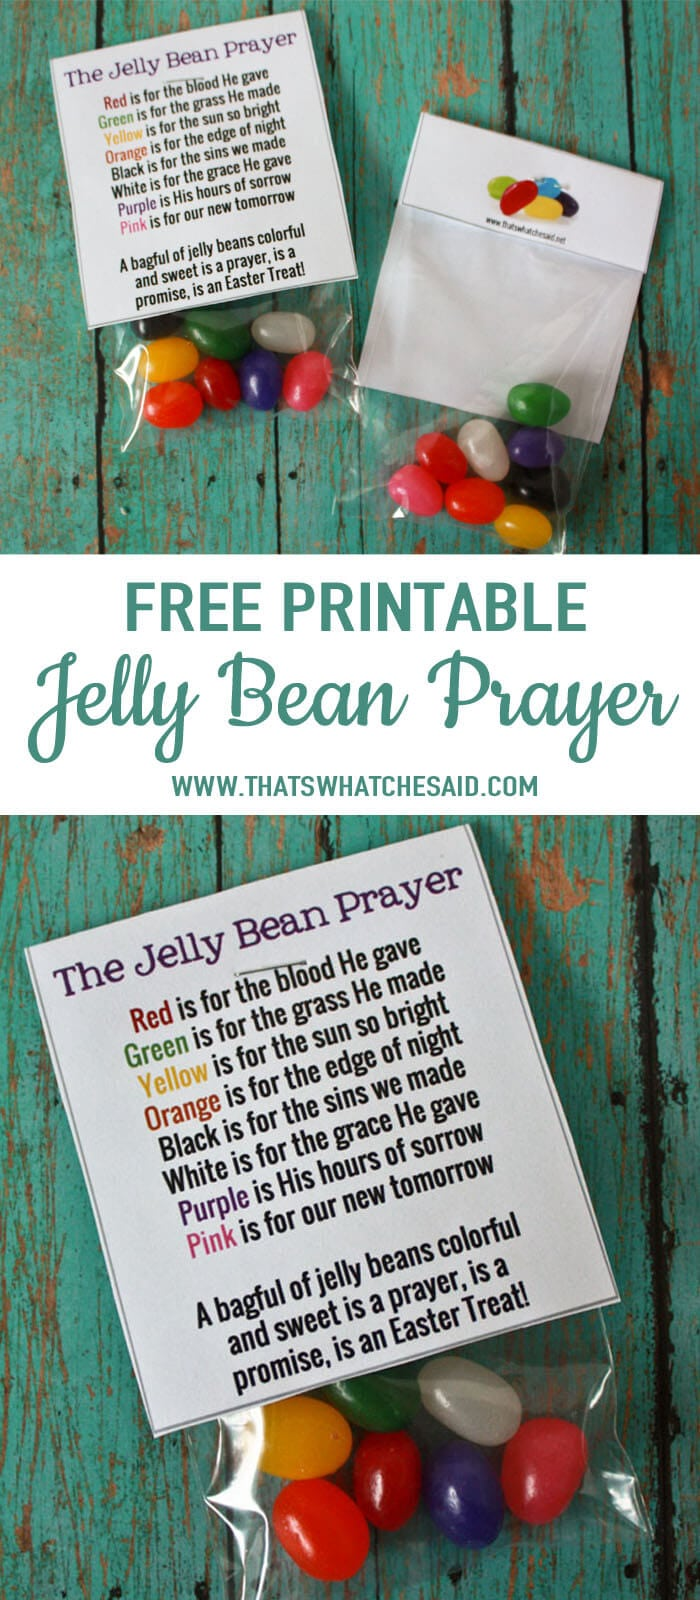 Sizzling image intended for jelly bean prayer printable